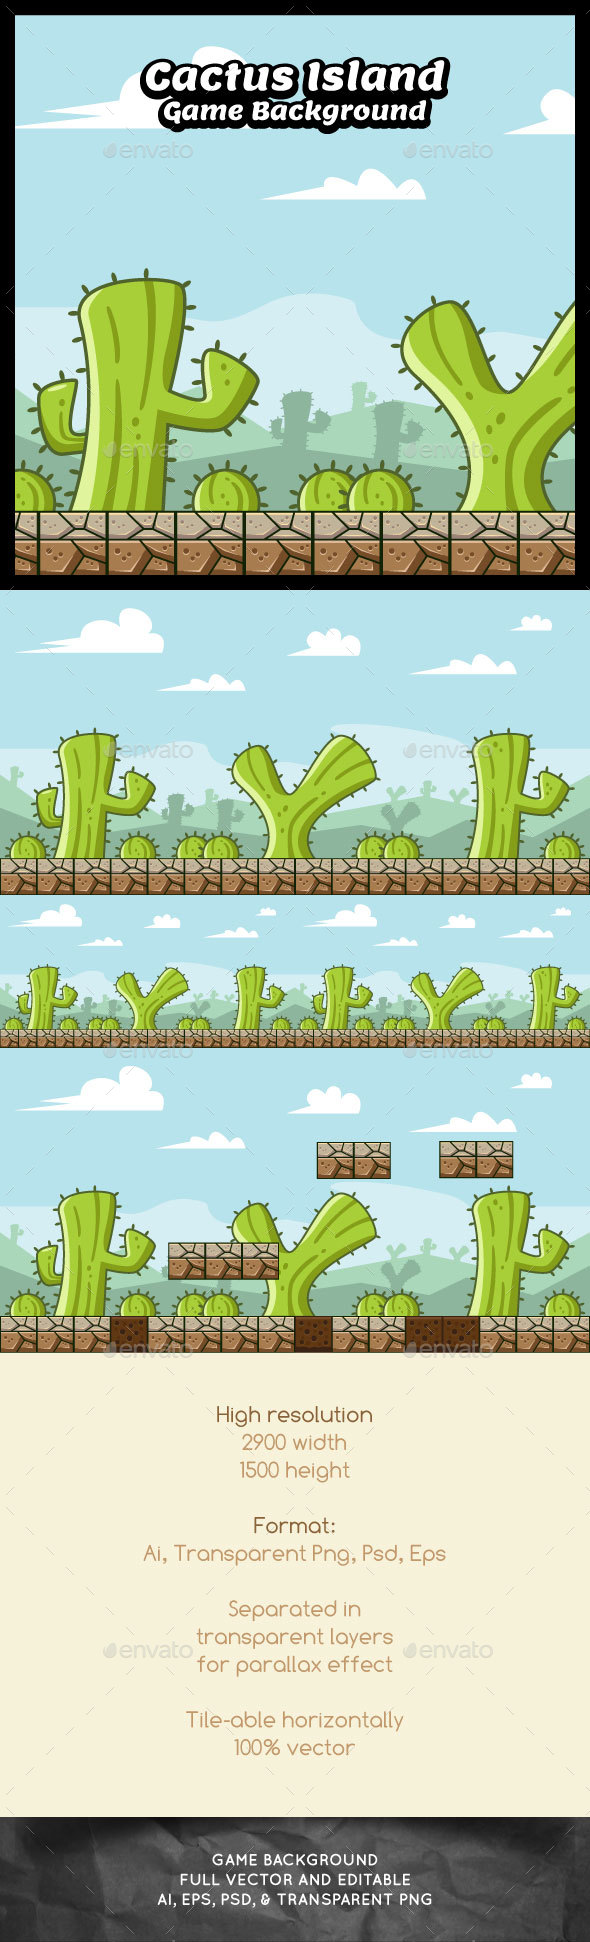 Cactus Island Game Background - Backgrounds Game Assets